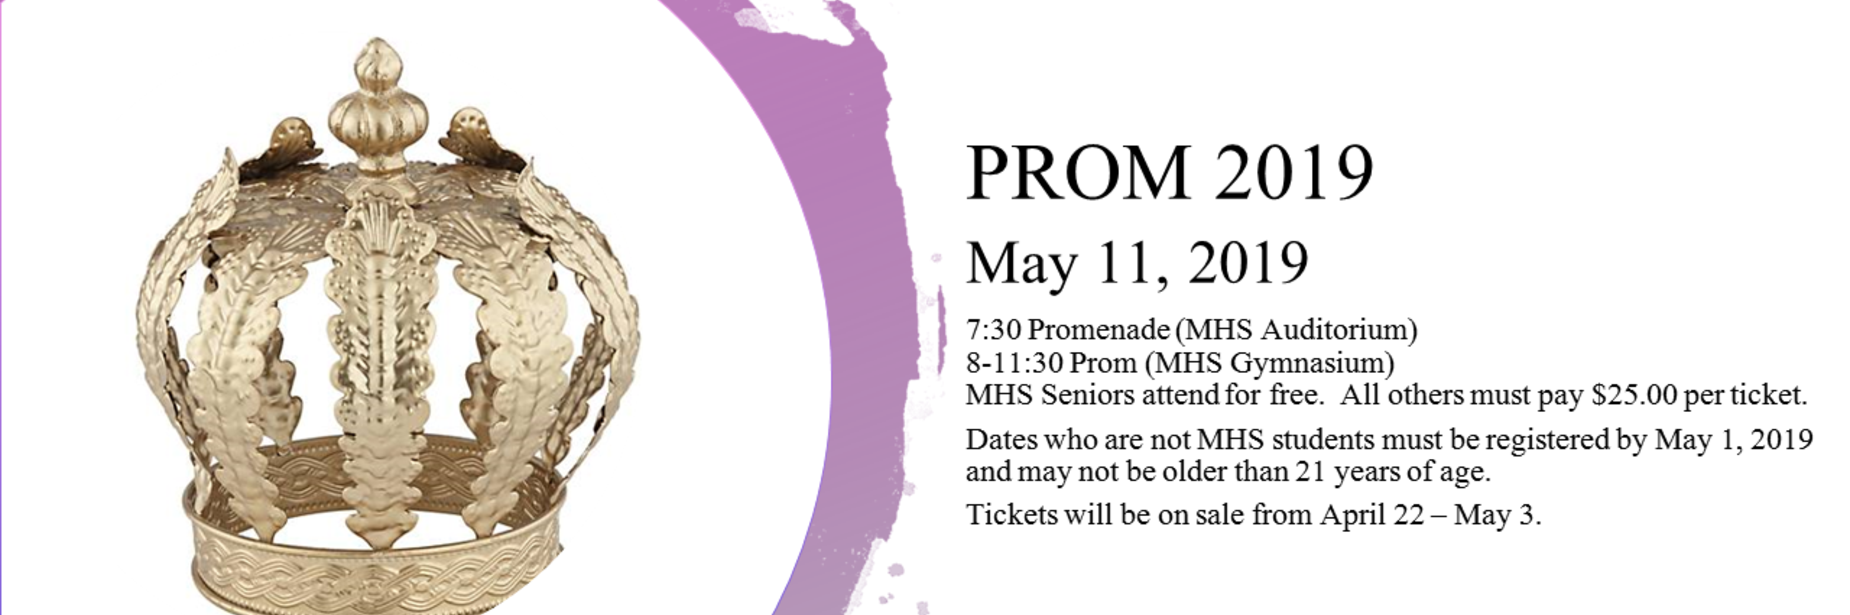 PROM 2019 May 11, 2019 7:30 Promenade (MHS Auditorium)8-11:30 Prom (MHS Gymnasium)MHS Seniors attend for free.  All others must pay $25.00 per ticket. Dates who are not MHS students must be registered by May 1, 2019 and may not be older than 21 years of age. Tickets will be on sale from April 22 – May 3.